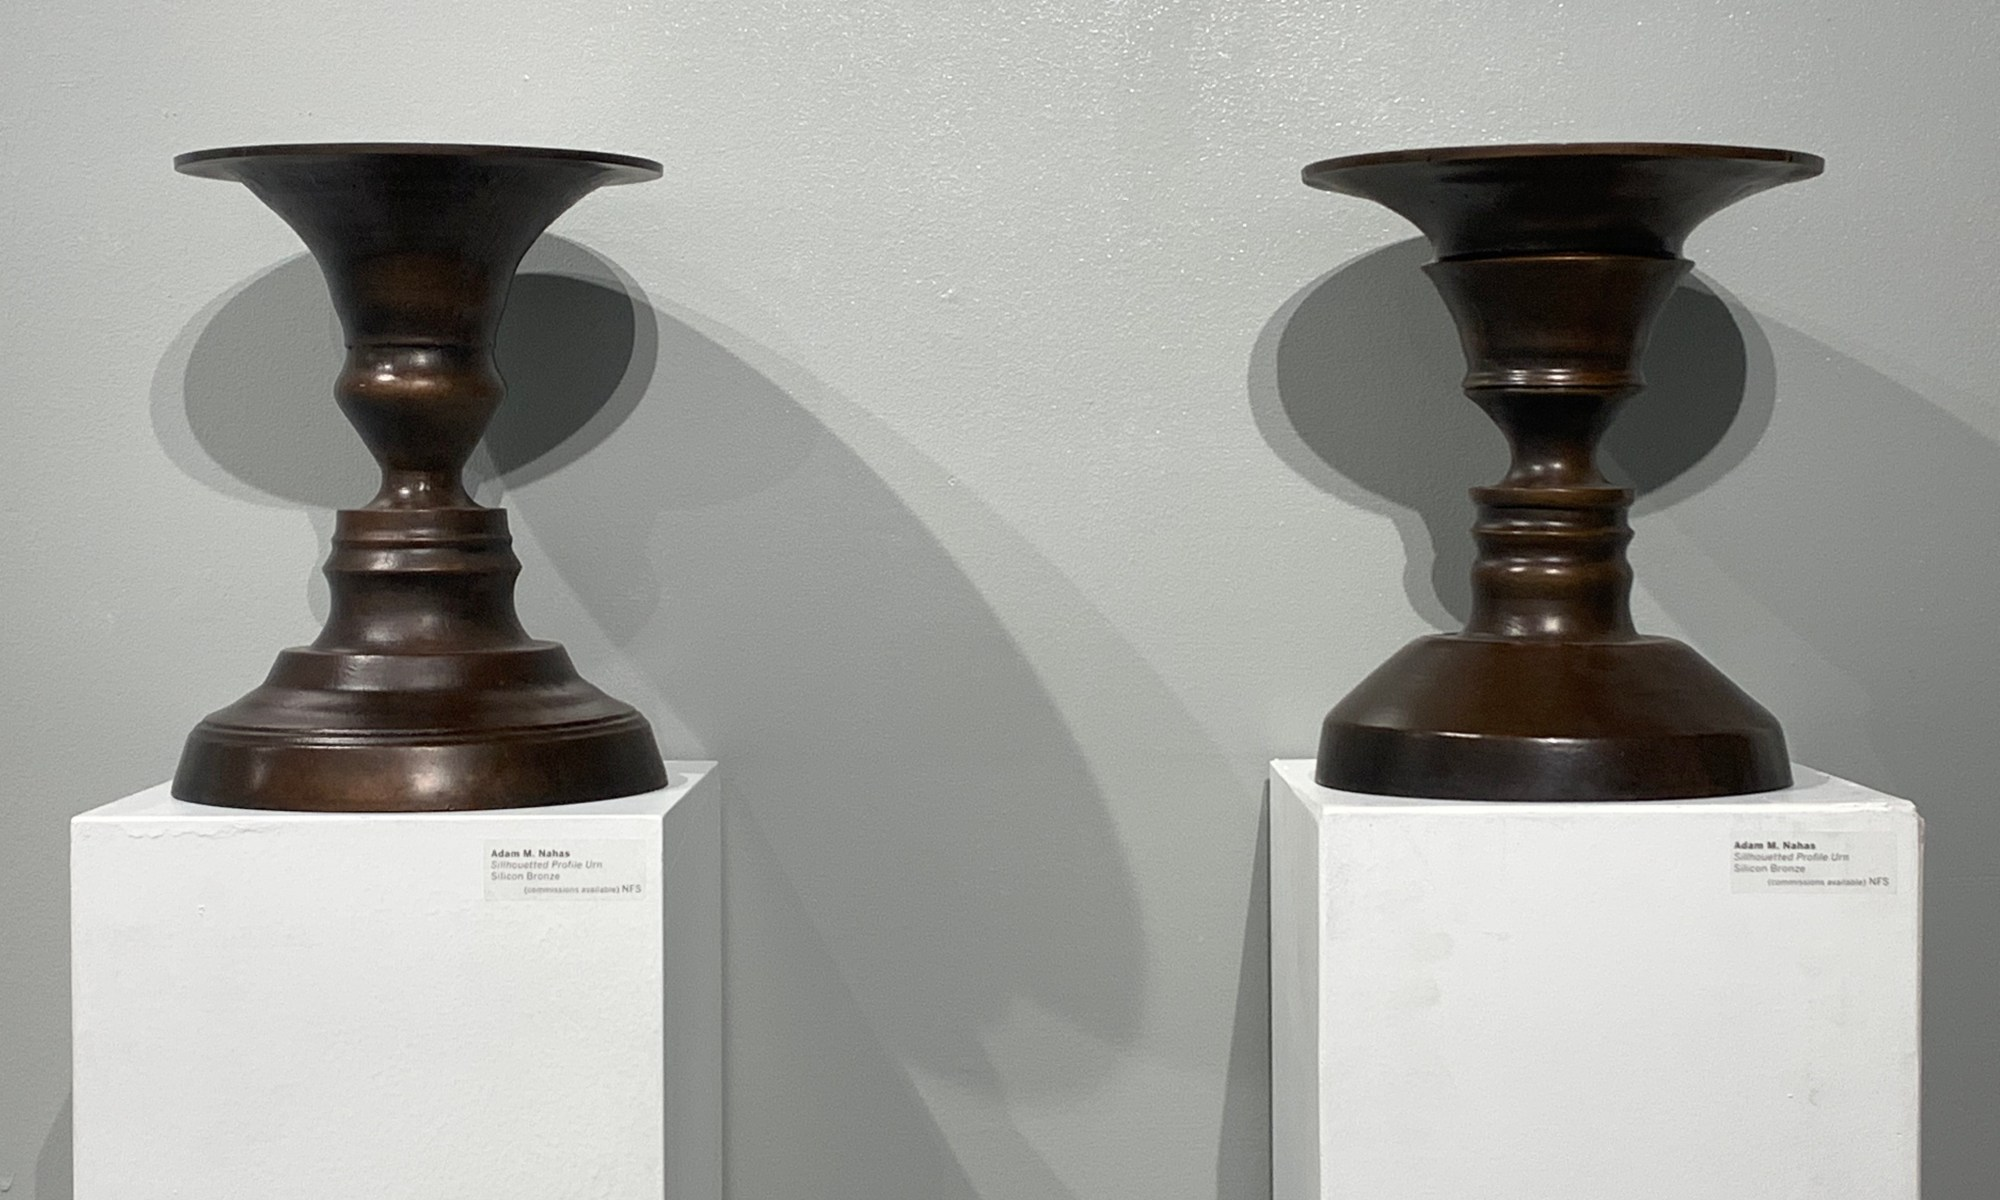 Adam Nahas- Silhouetted Bronze Memorial Urns